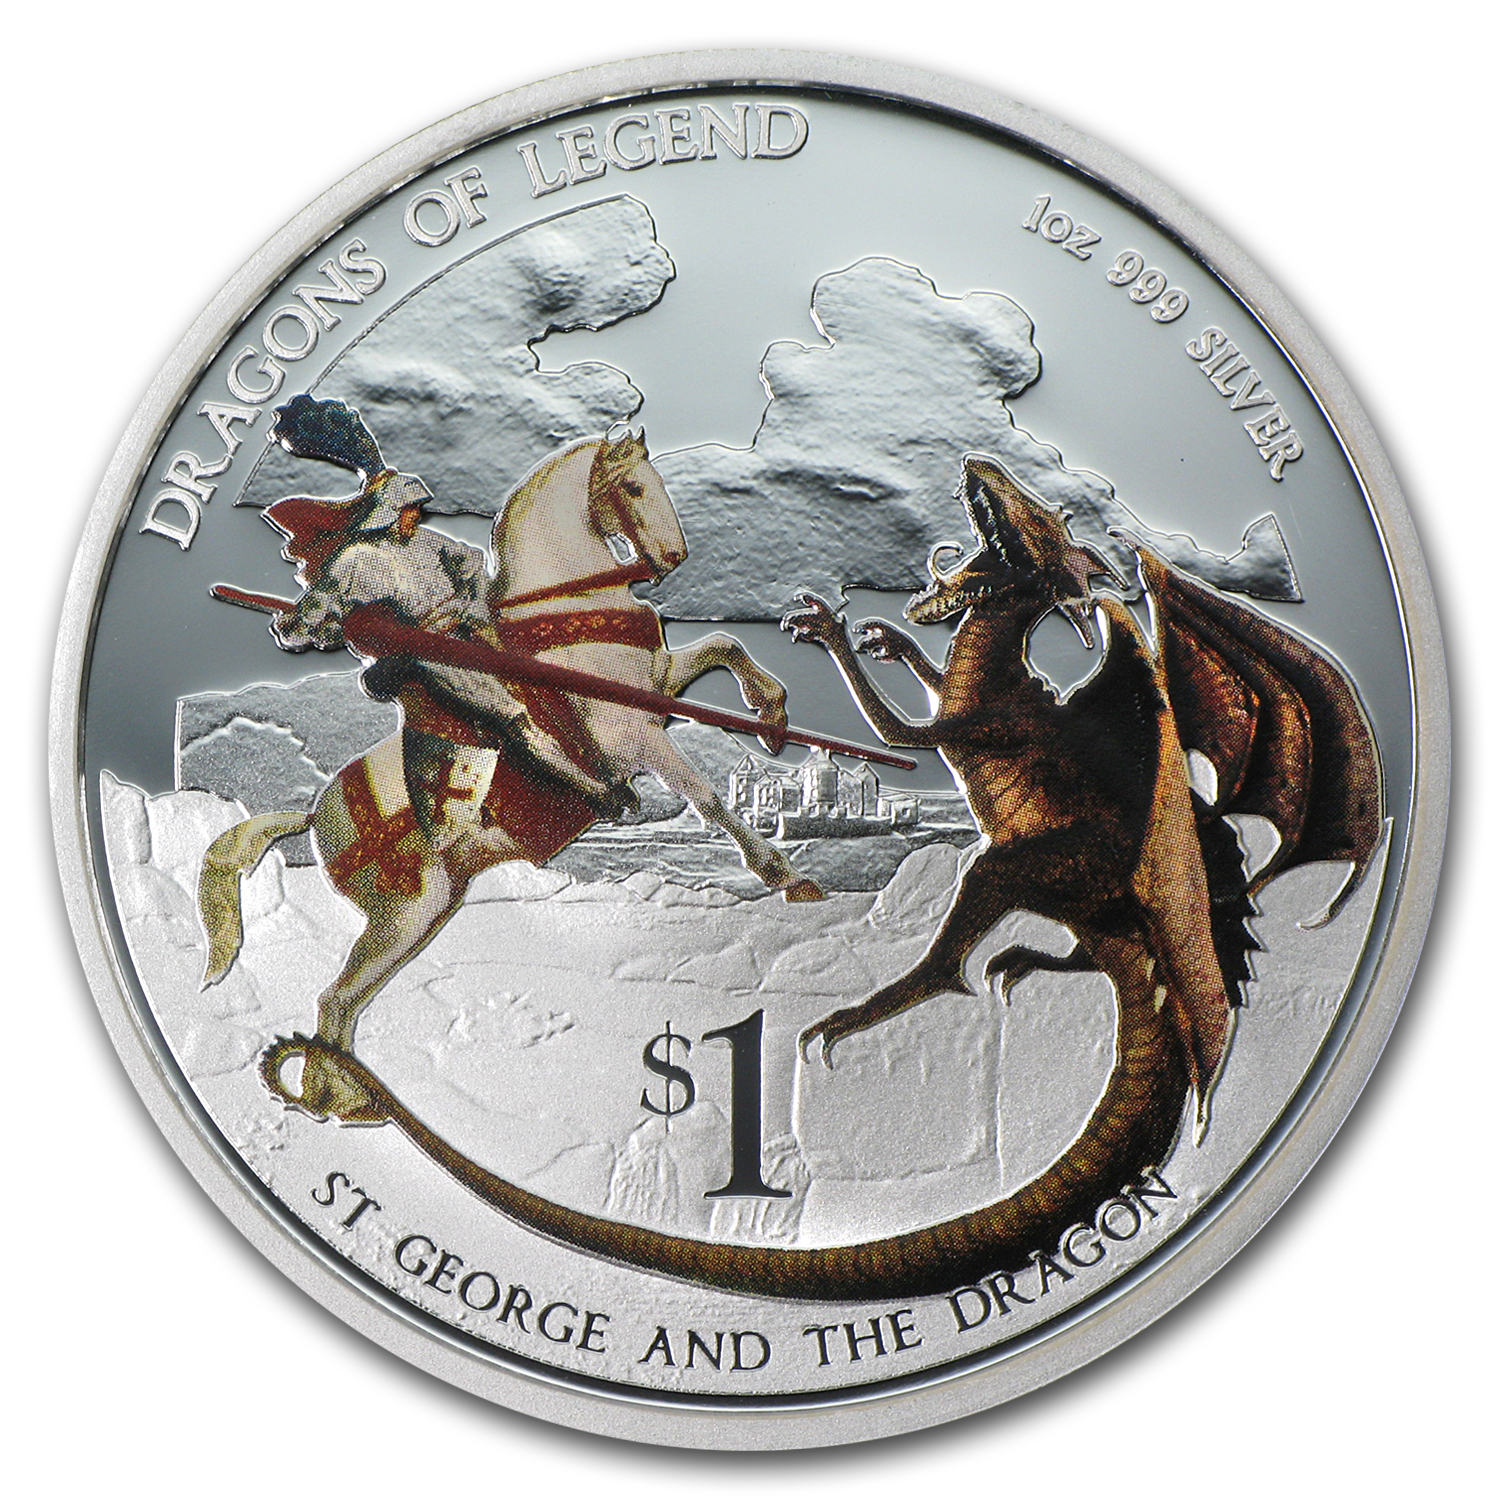 2012 1 oz Silver Dragons of Legend Proof (St George & the Dragon)